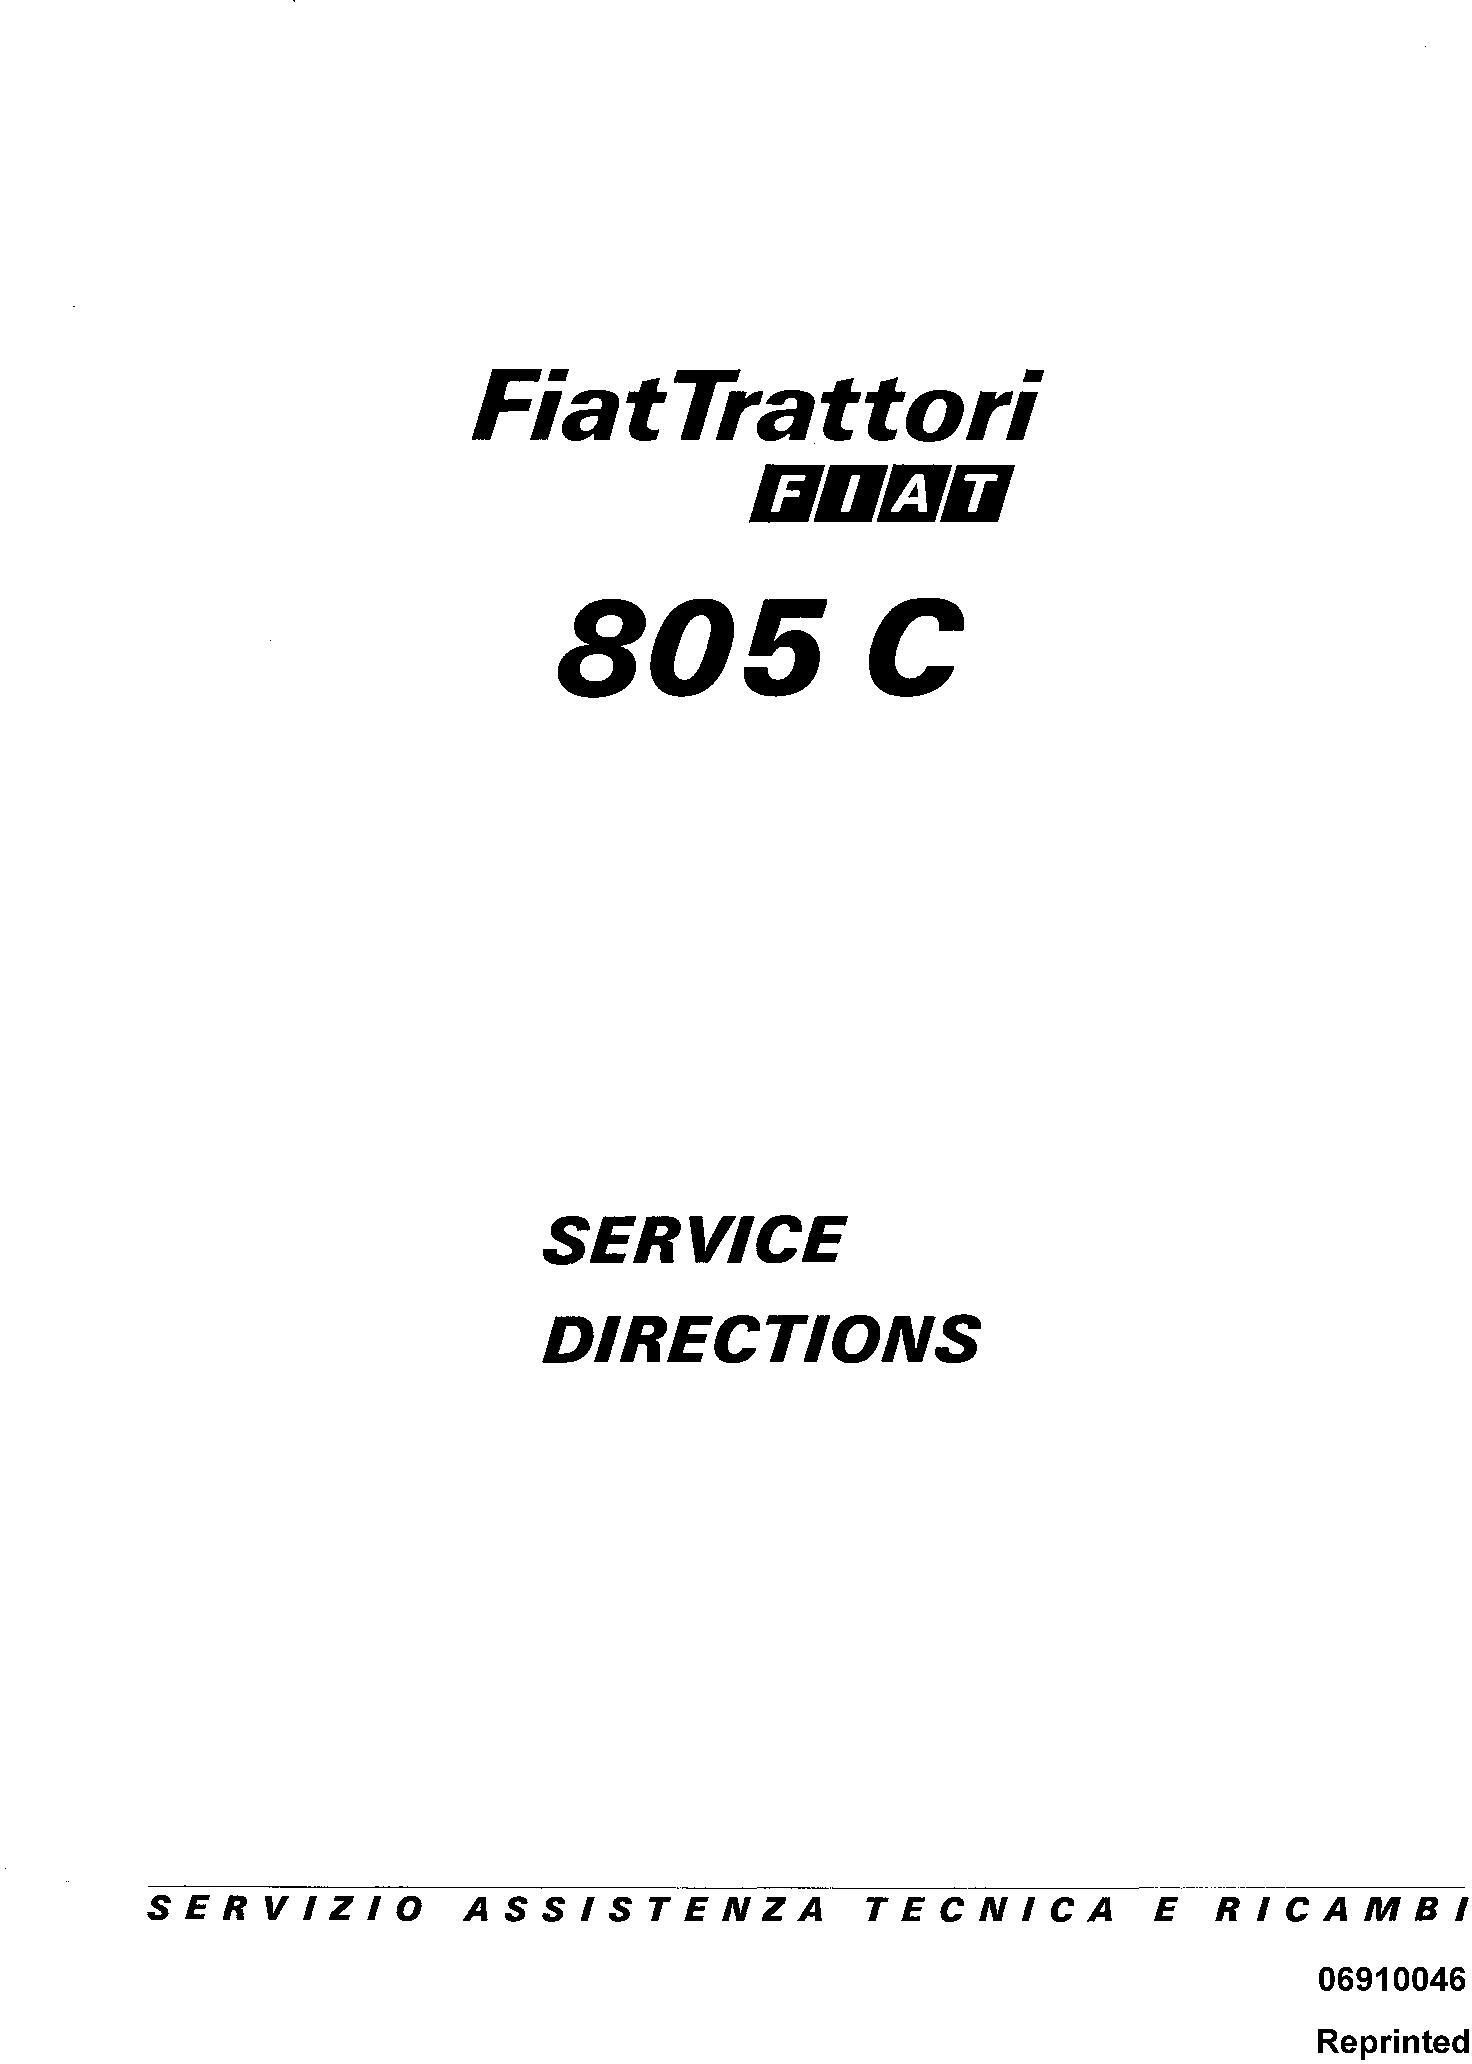 Fiat 805C Crawler Tractor Service Directions Manual